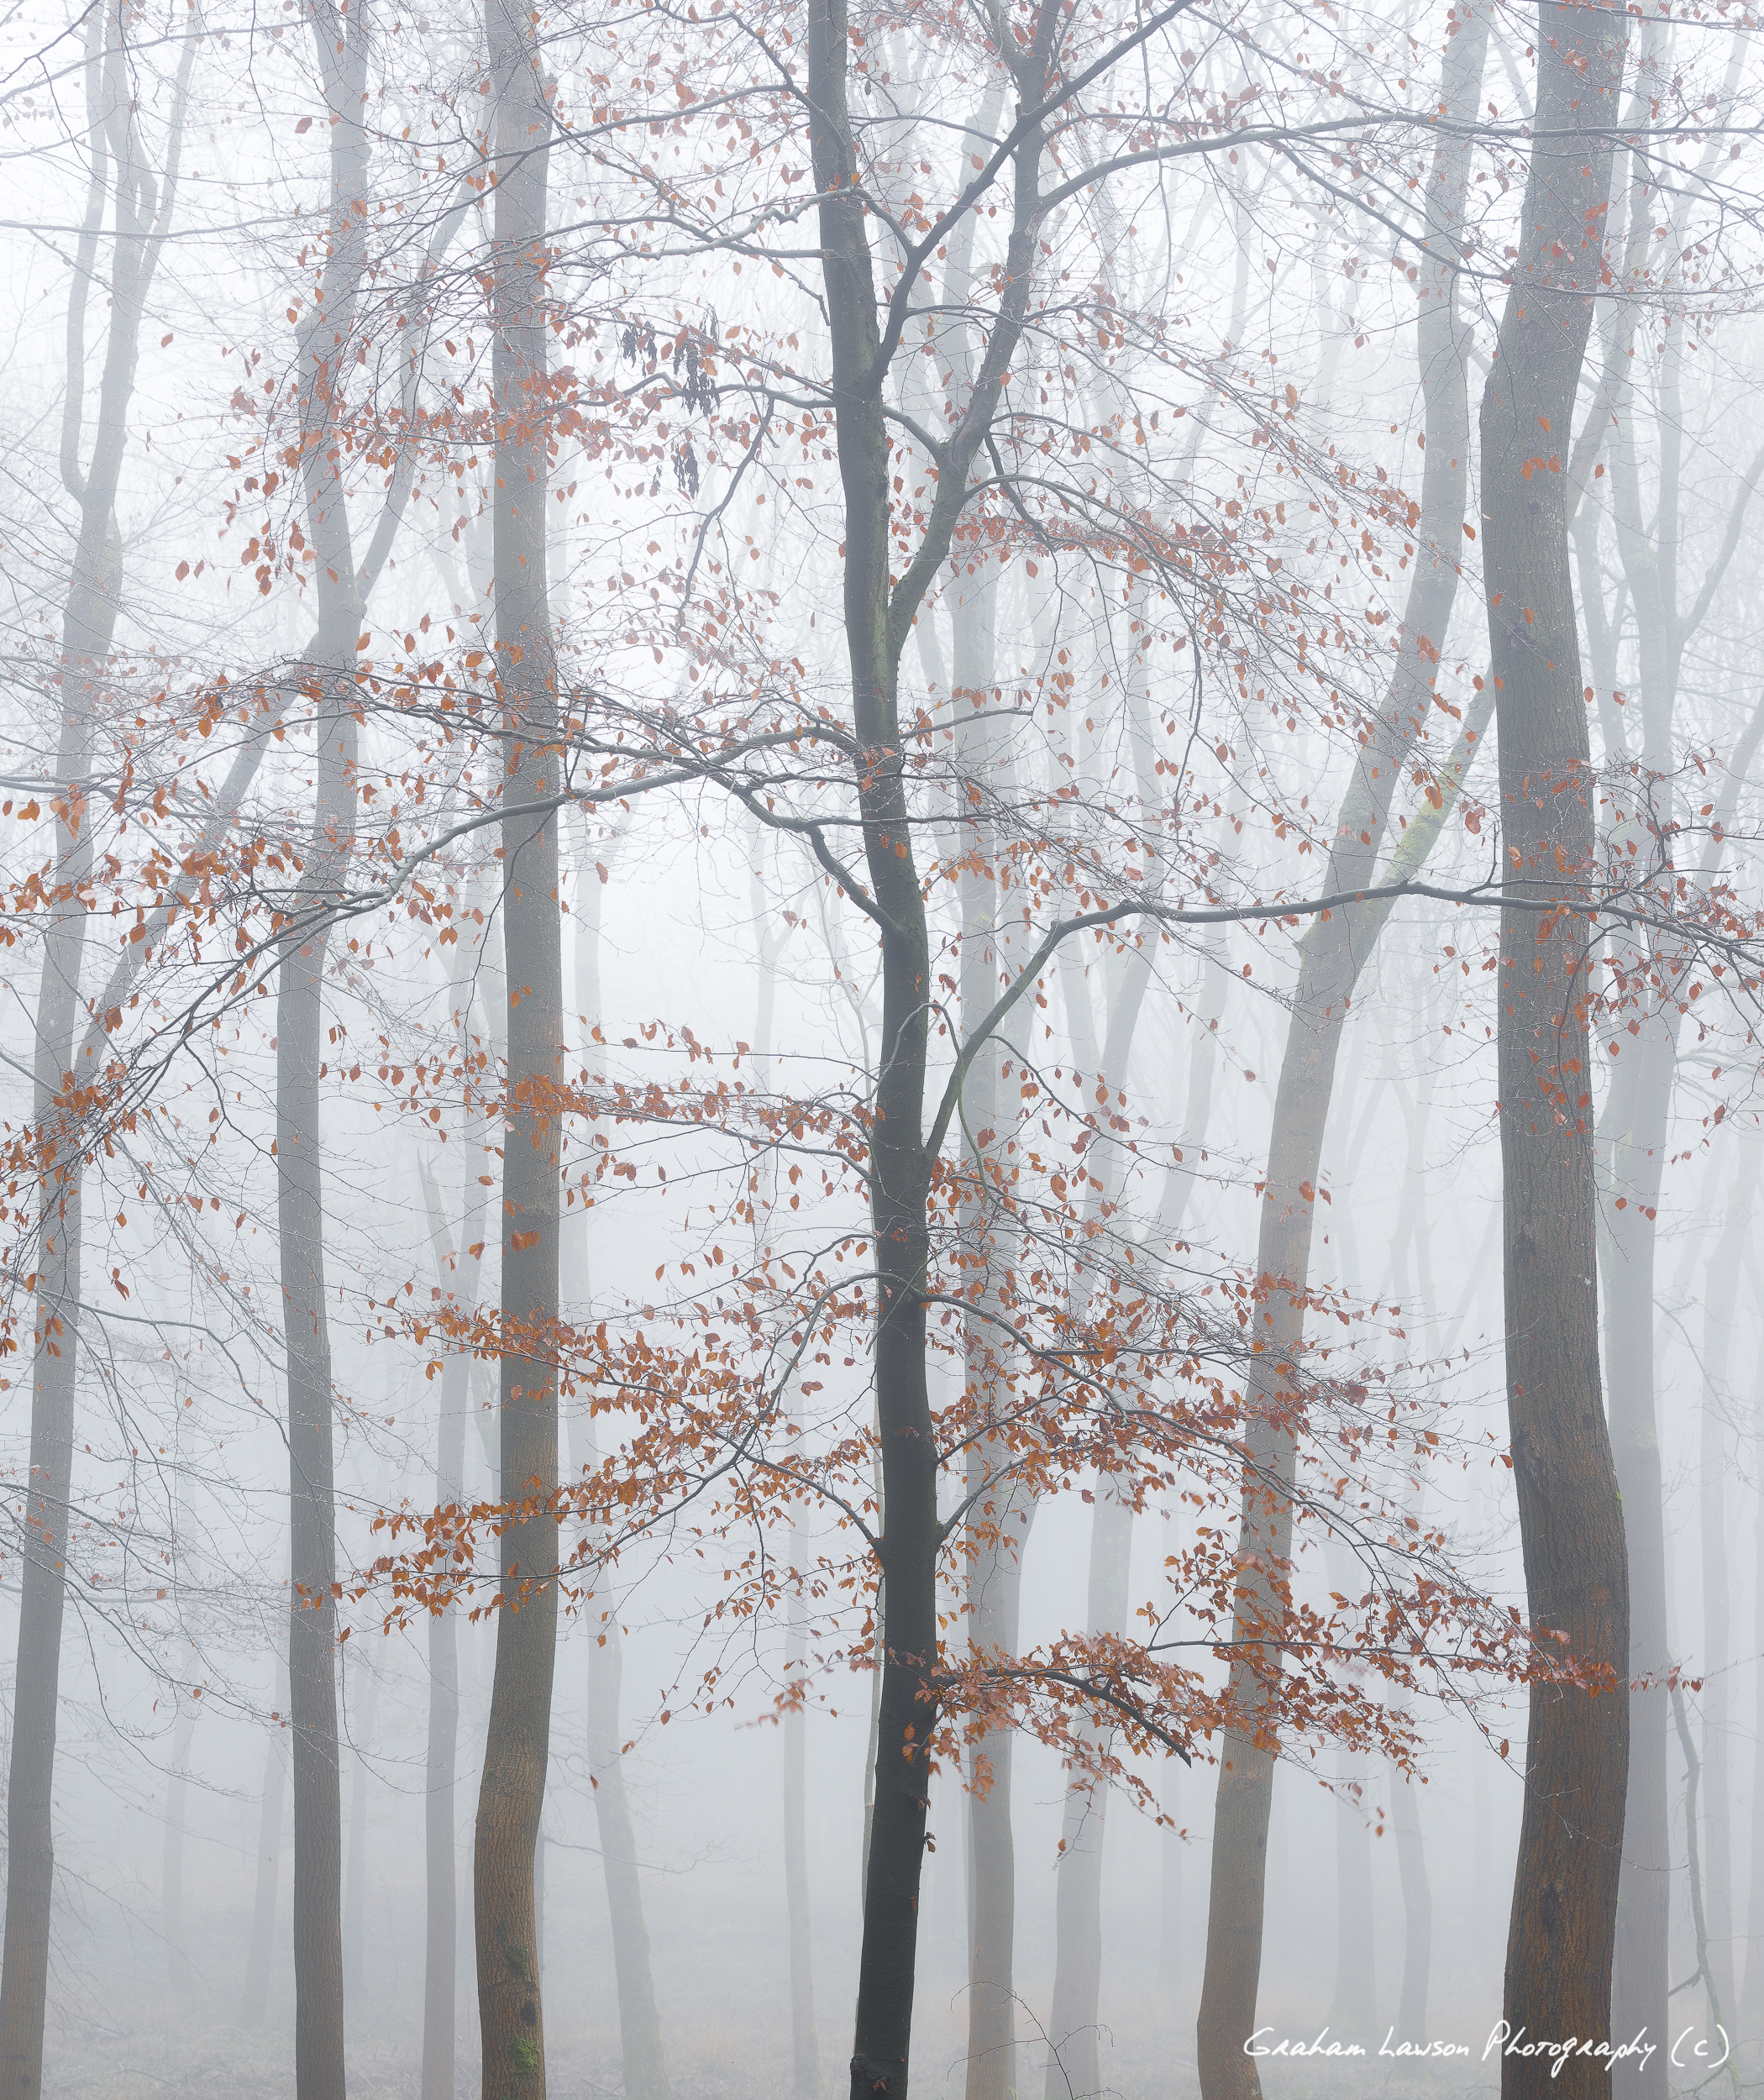 Colour in the Fog